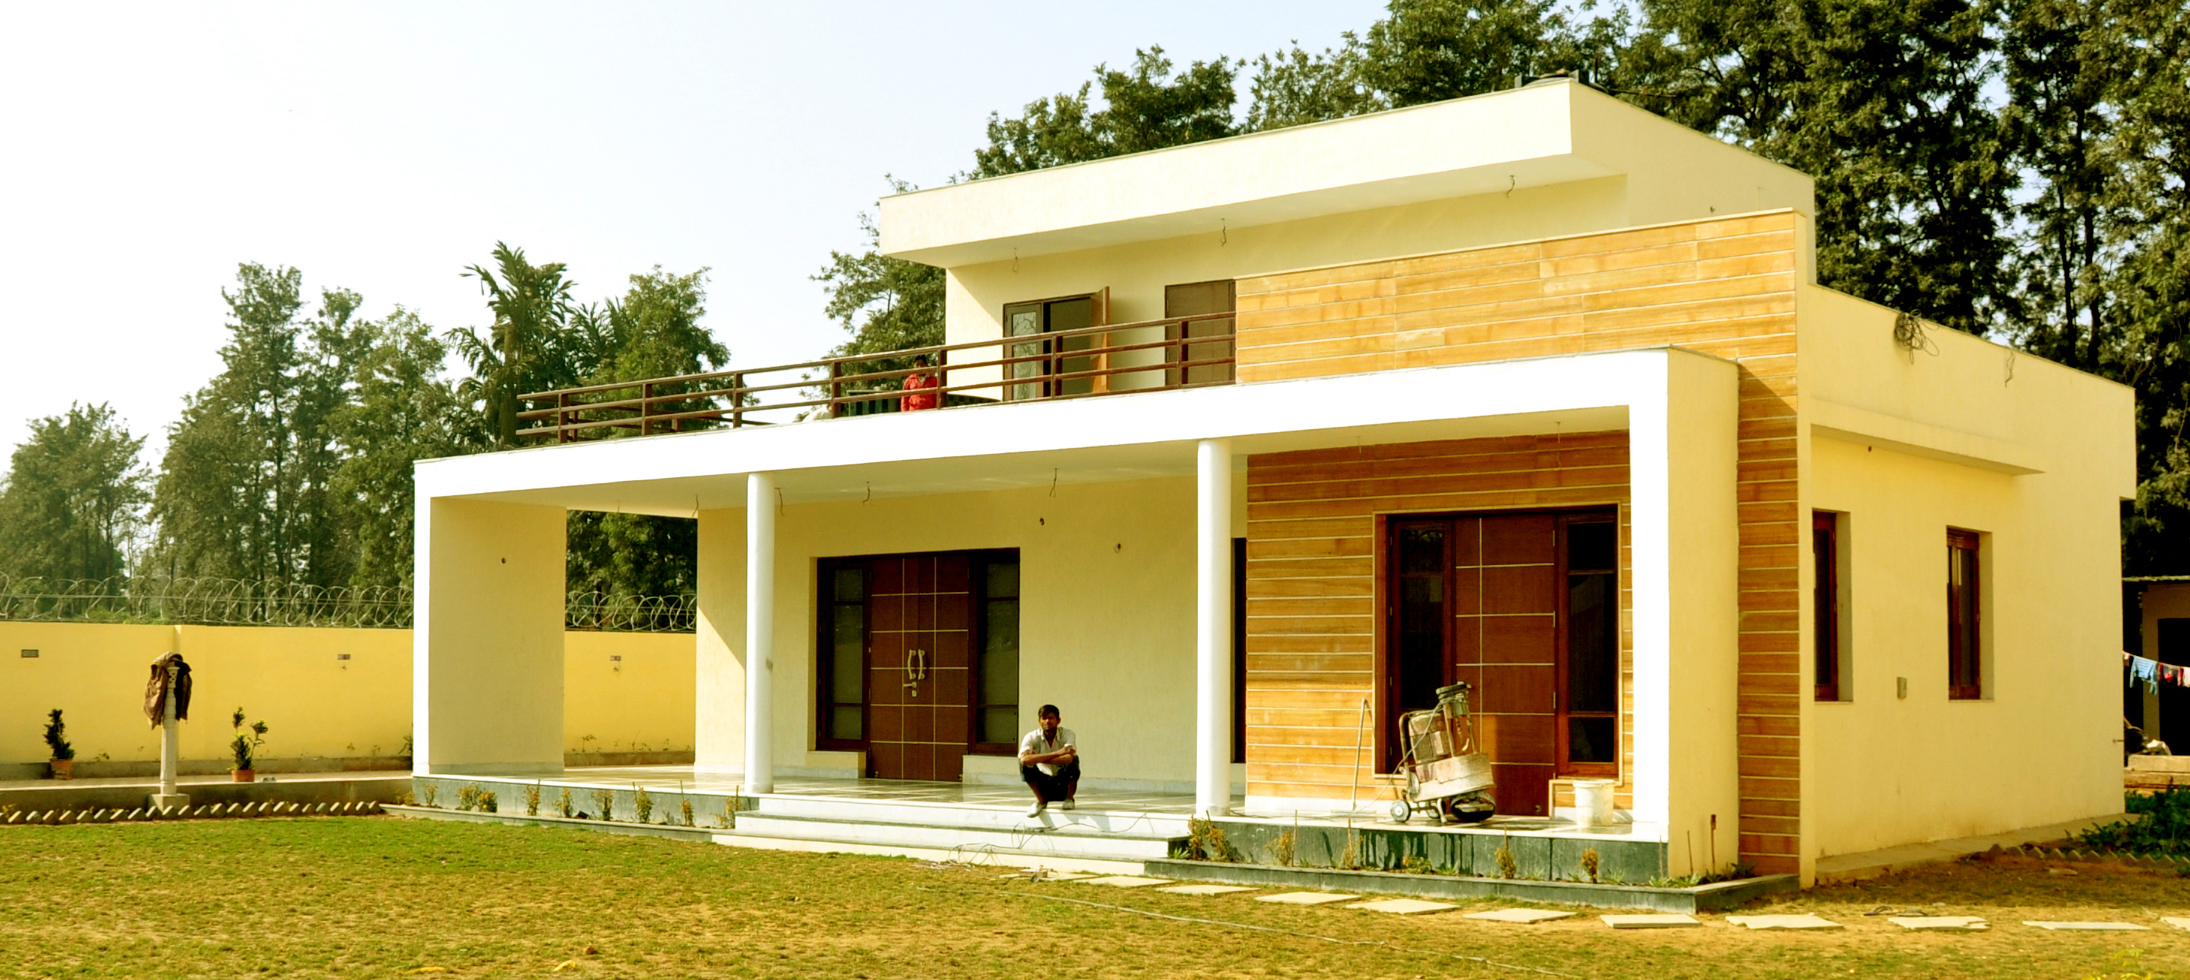 Chattarpur farm house south delhi architect magazine for Designs of houses in india